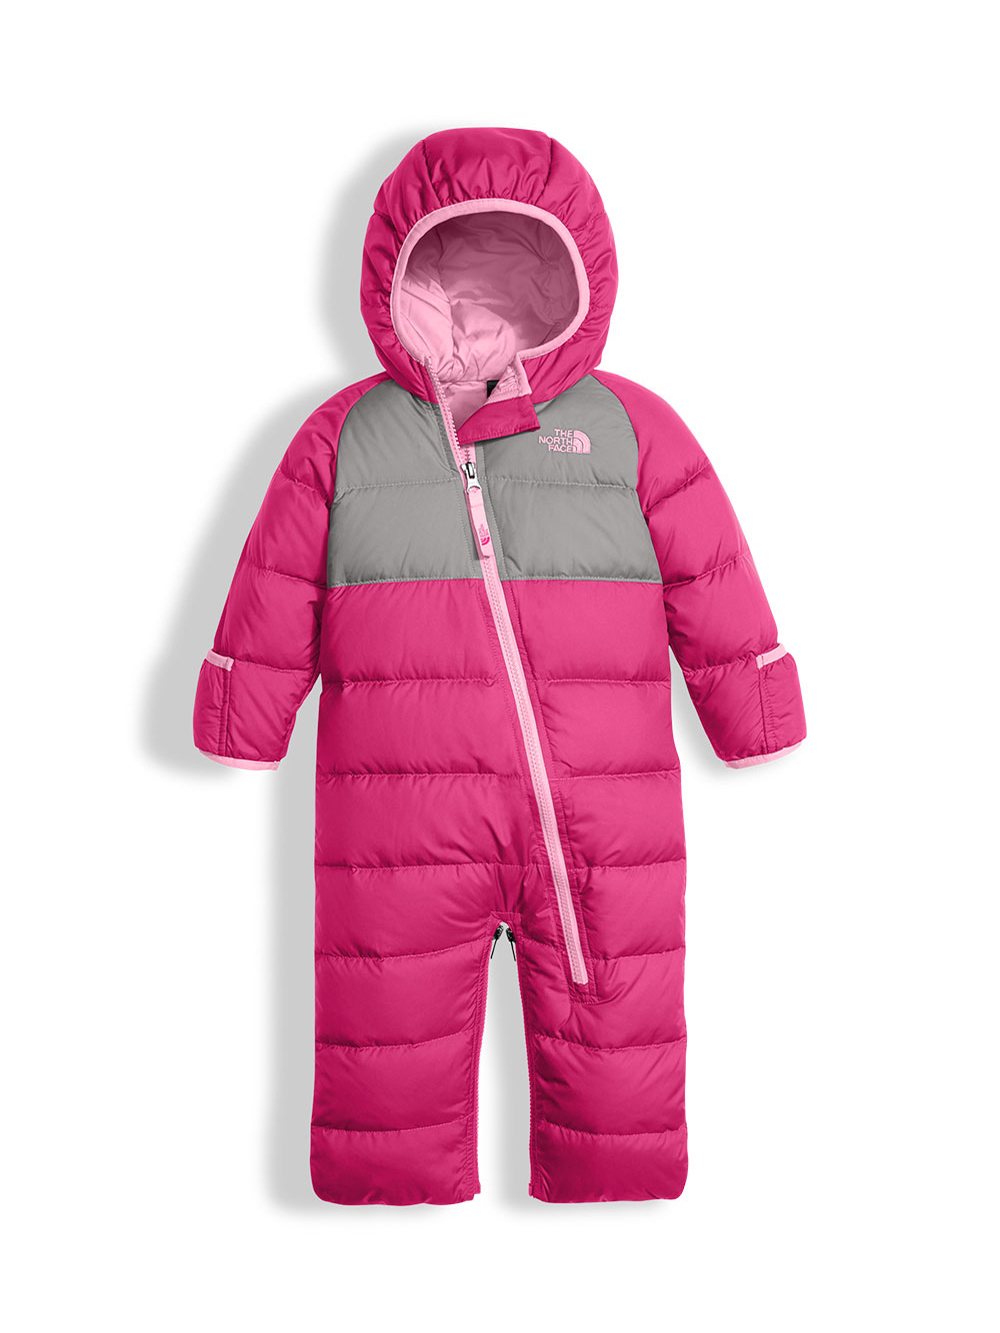 5d9df204f discount code for north face baby down jacket 2f644 fb920